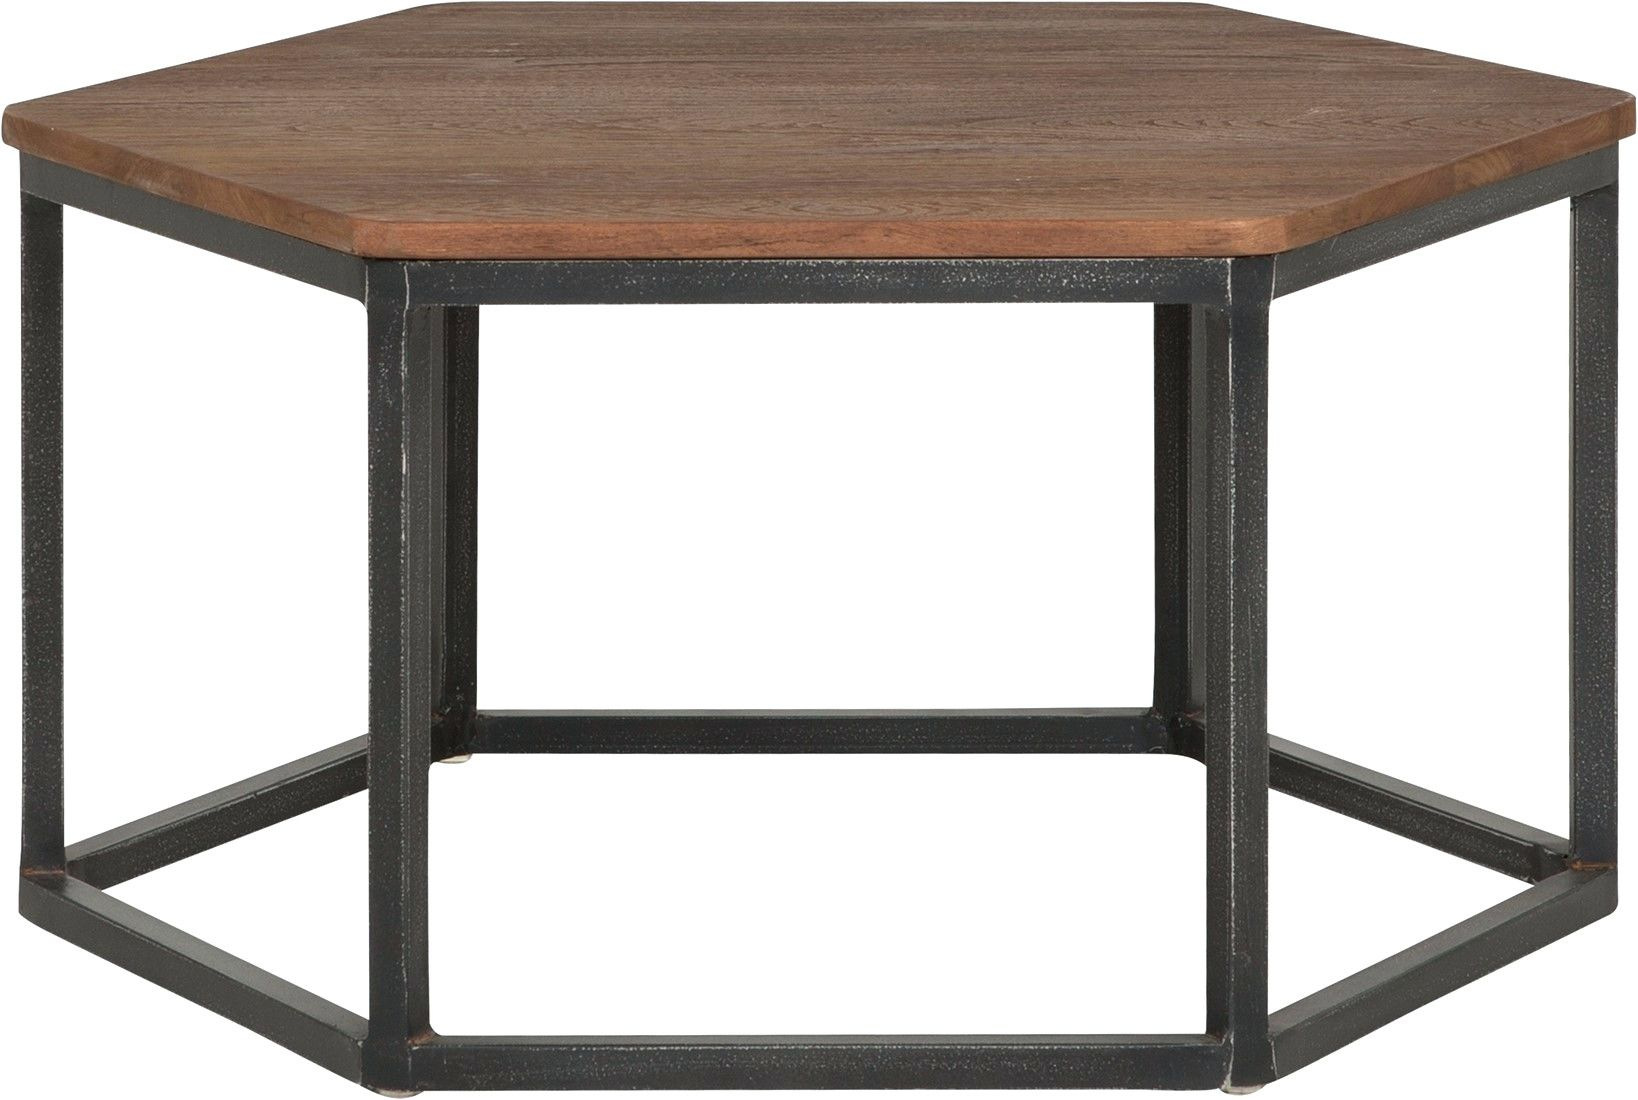 Hexagon Coffee Table Plans